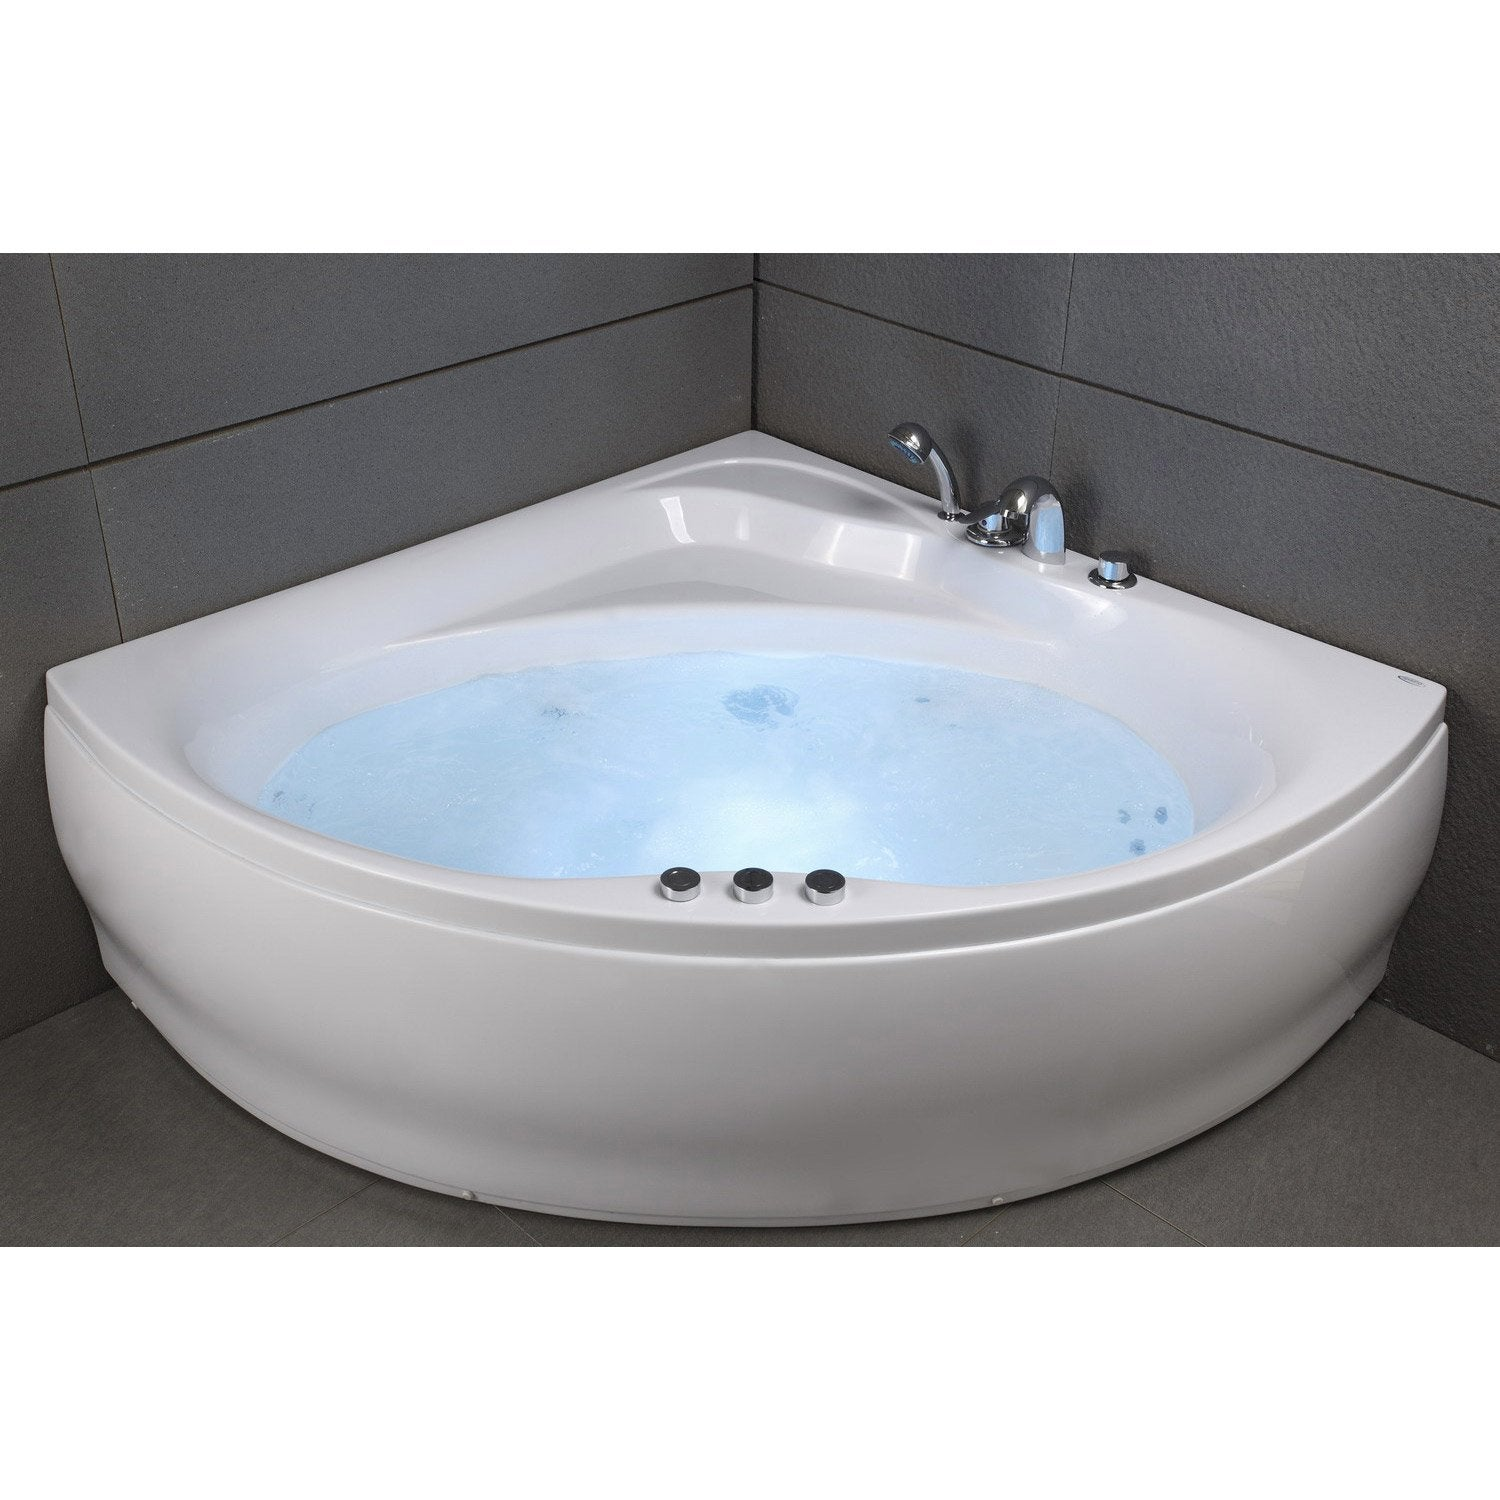 baignoire jacuzzi affordable baignoire jacuzzi with baignoire jacuzzi best baignoire spa. Black Bedroom Furniture Sets. Home Design Ideas